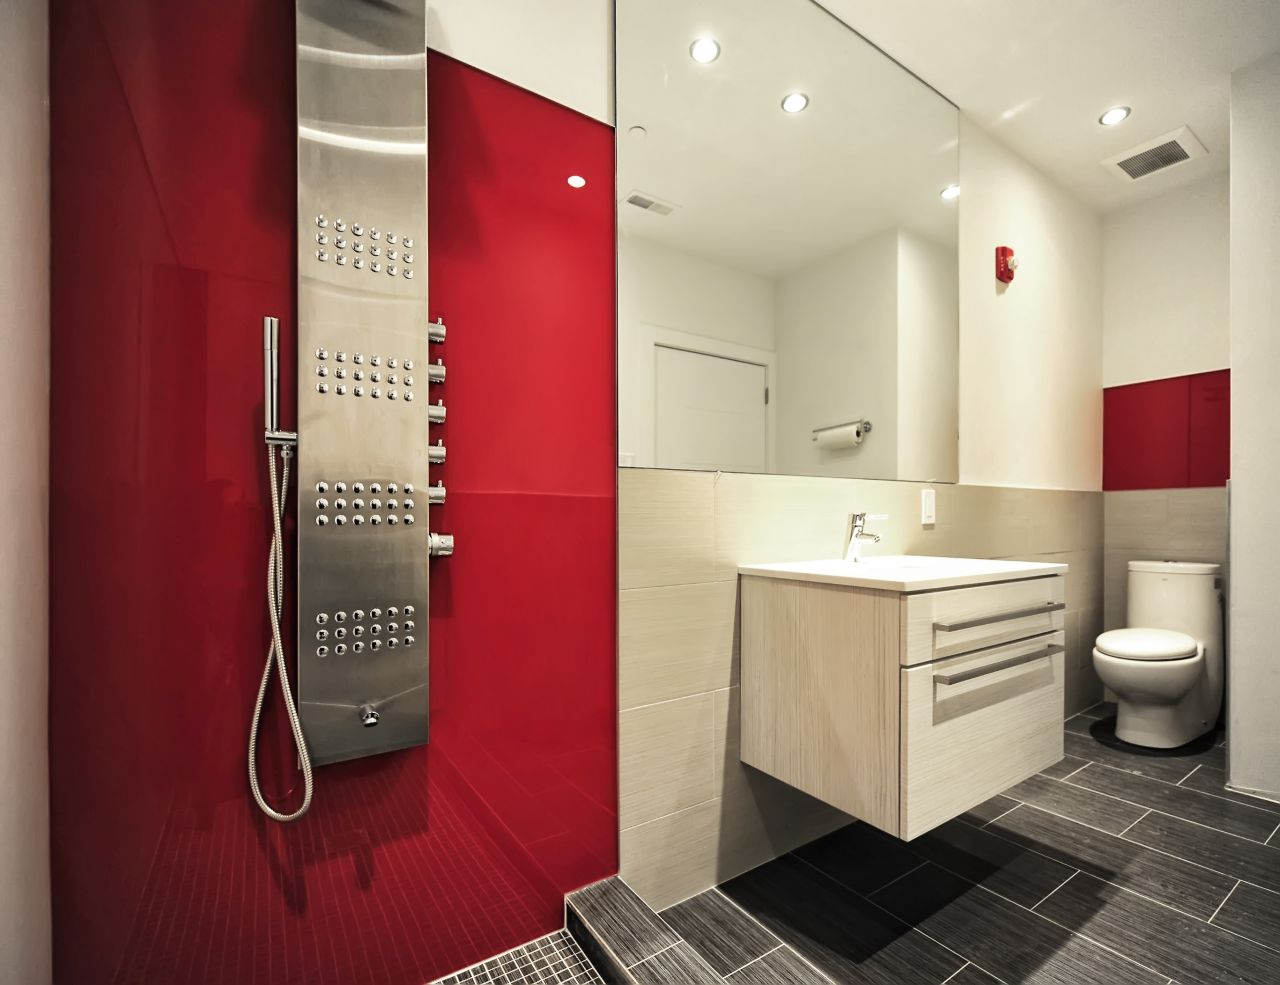 Waterproof bathroom panels uk - Does Thickness Matter In Shower Wall Panels